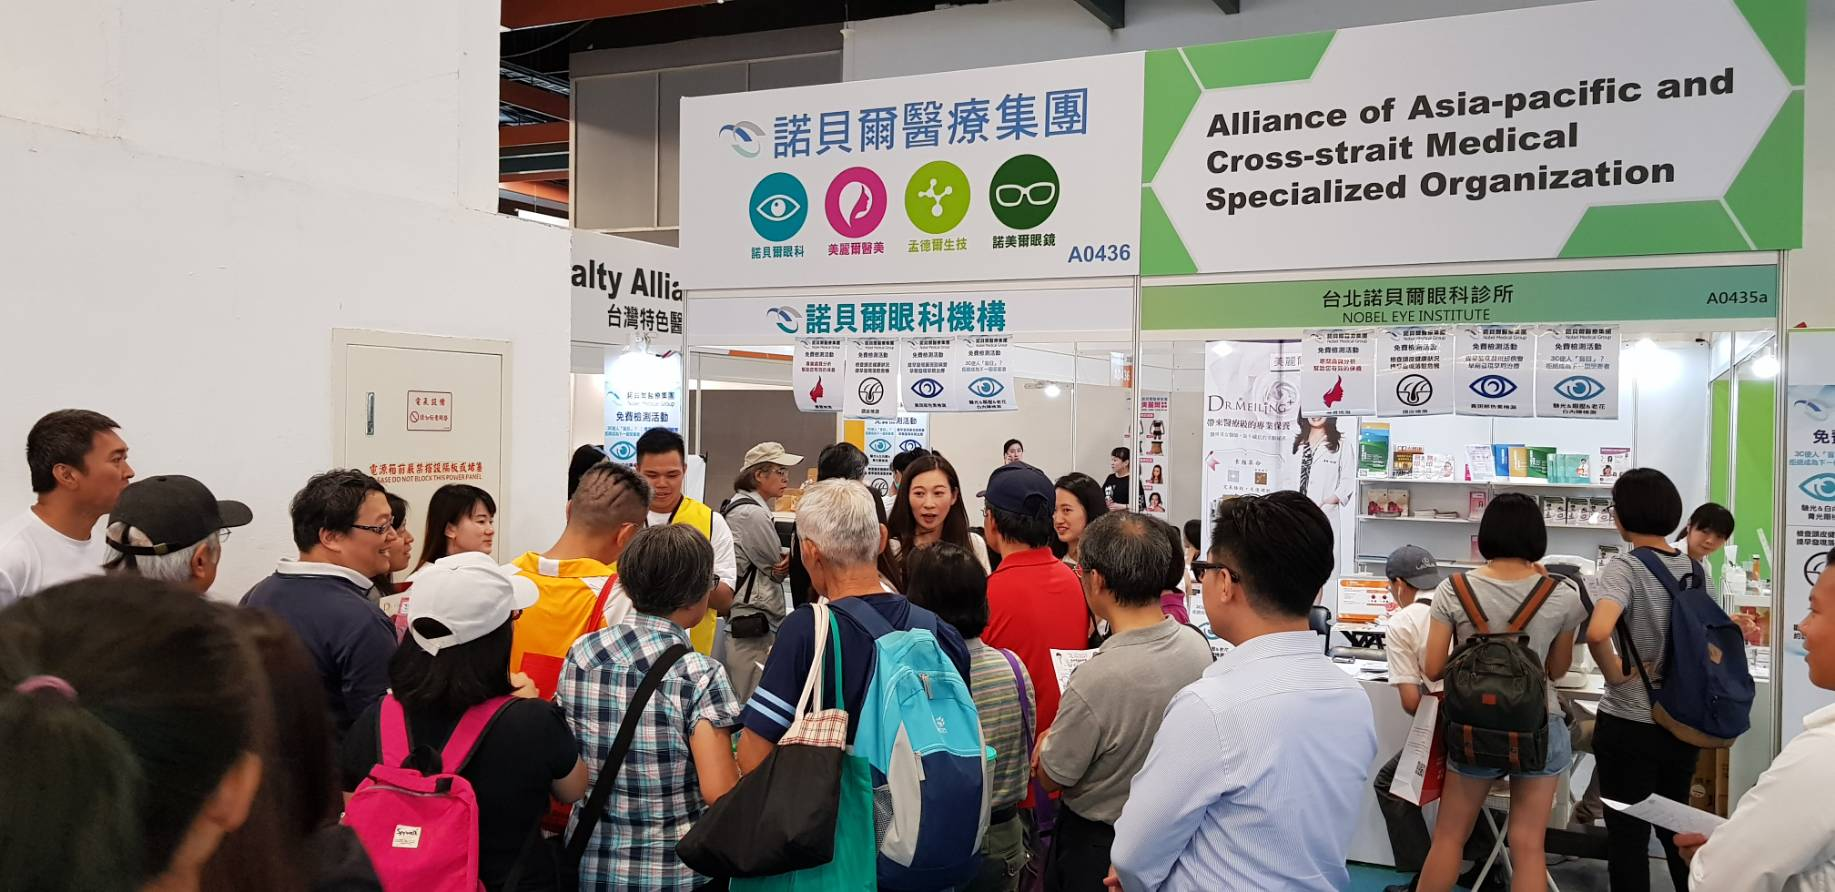 2018.06.21-24Taiwan International Medical & Healthcare Exhibition